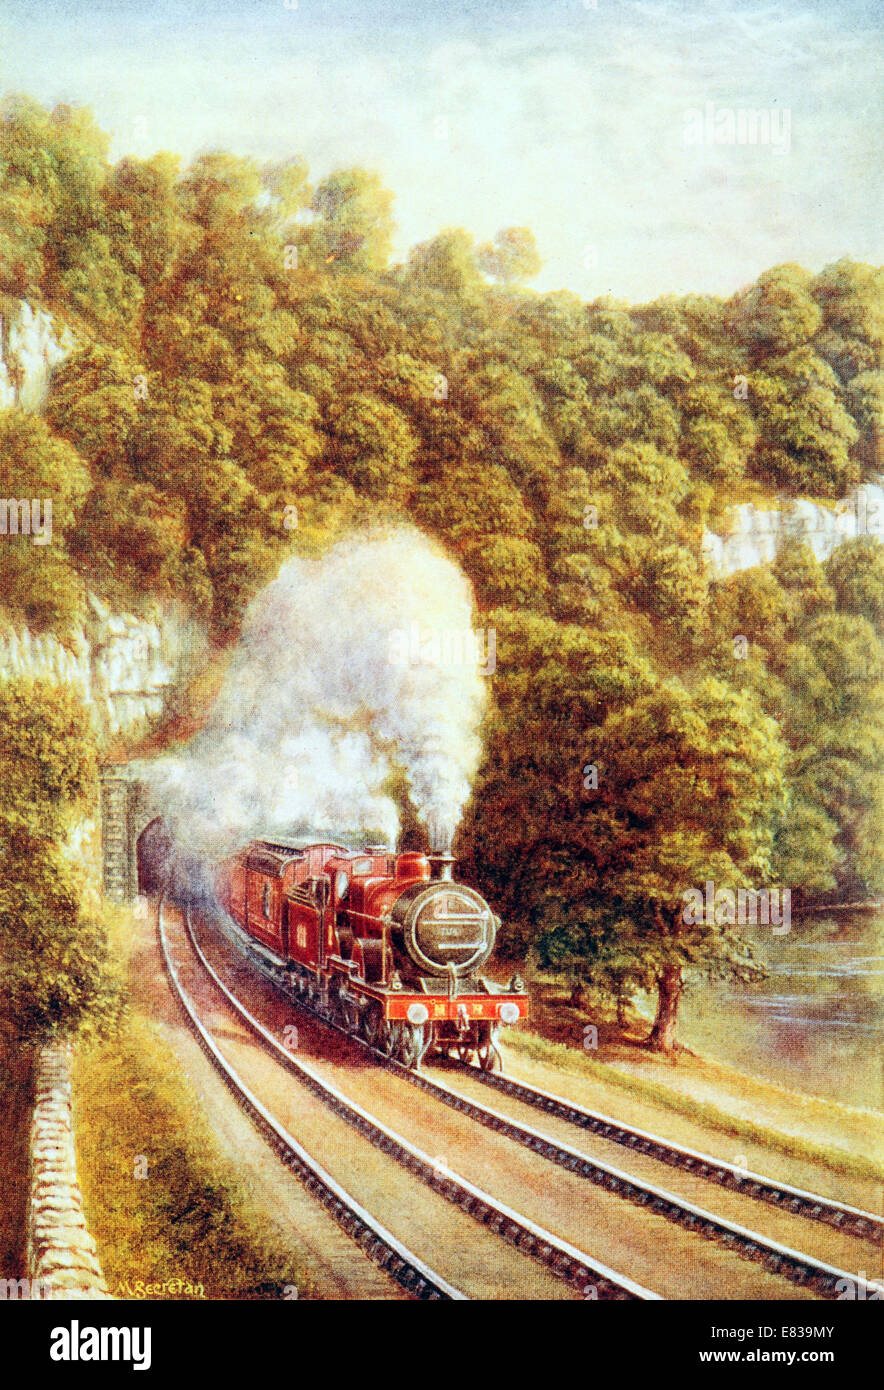 The Midland Scotch Express traversing the Picturesque County of the Dales Yorkshire UK circa 1920 Stock Photo